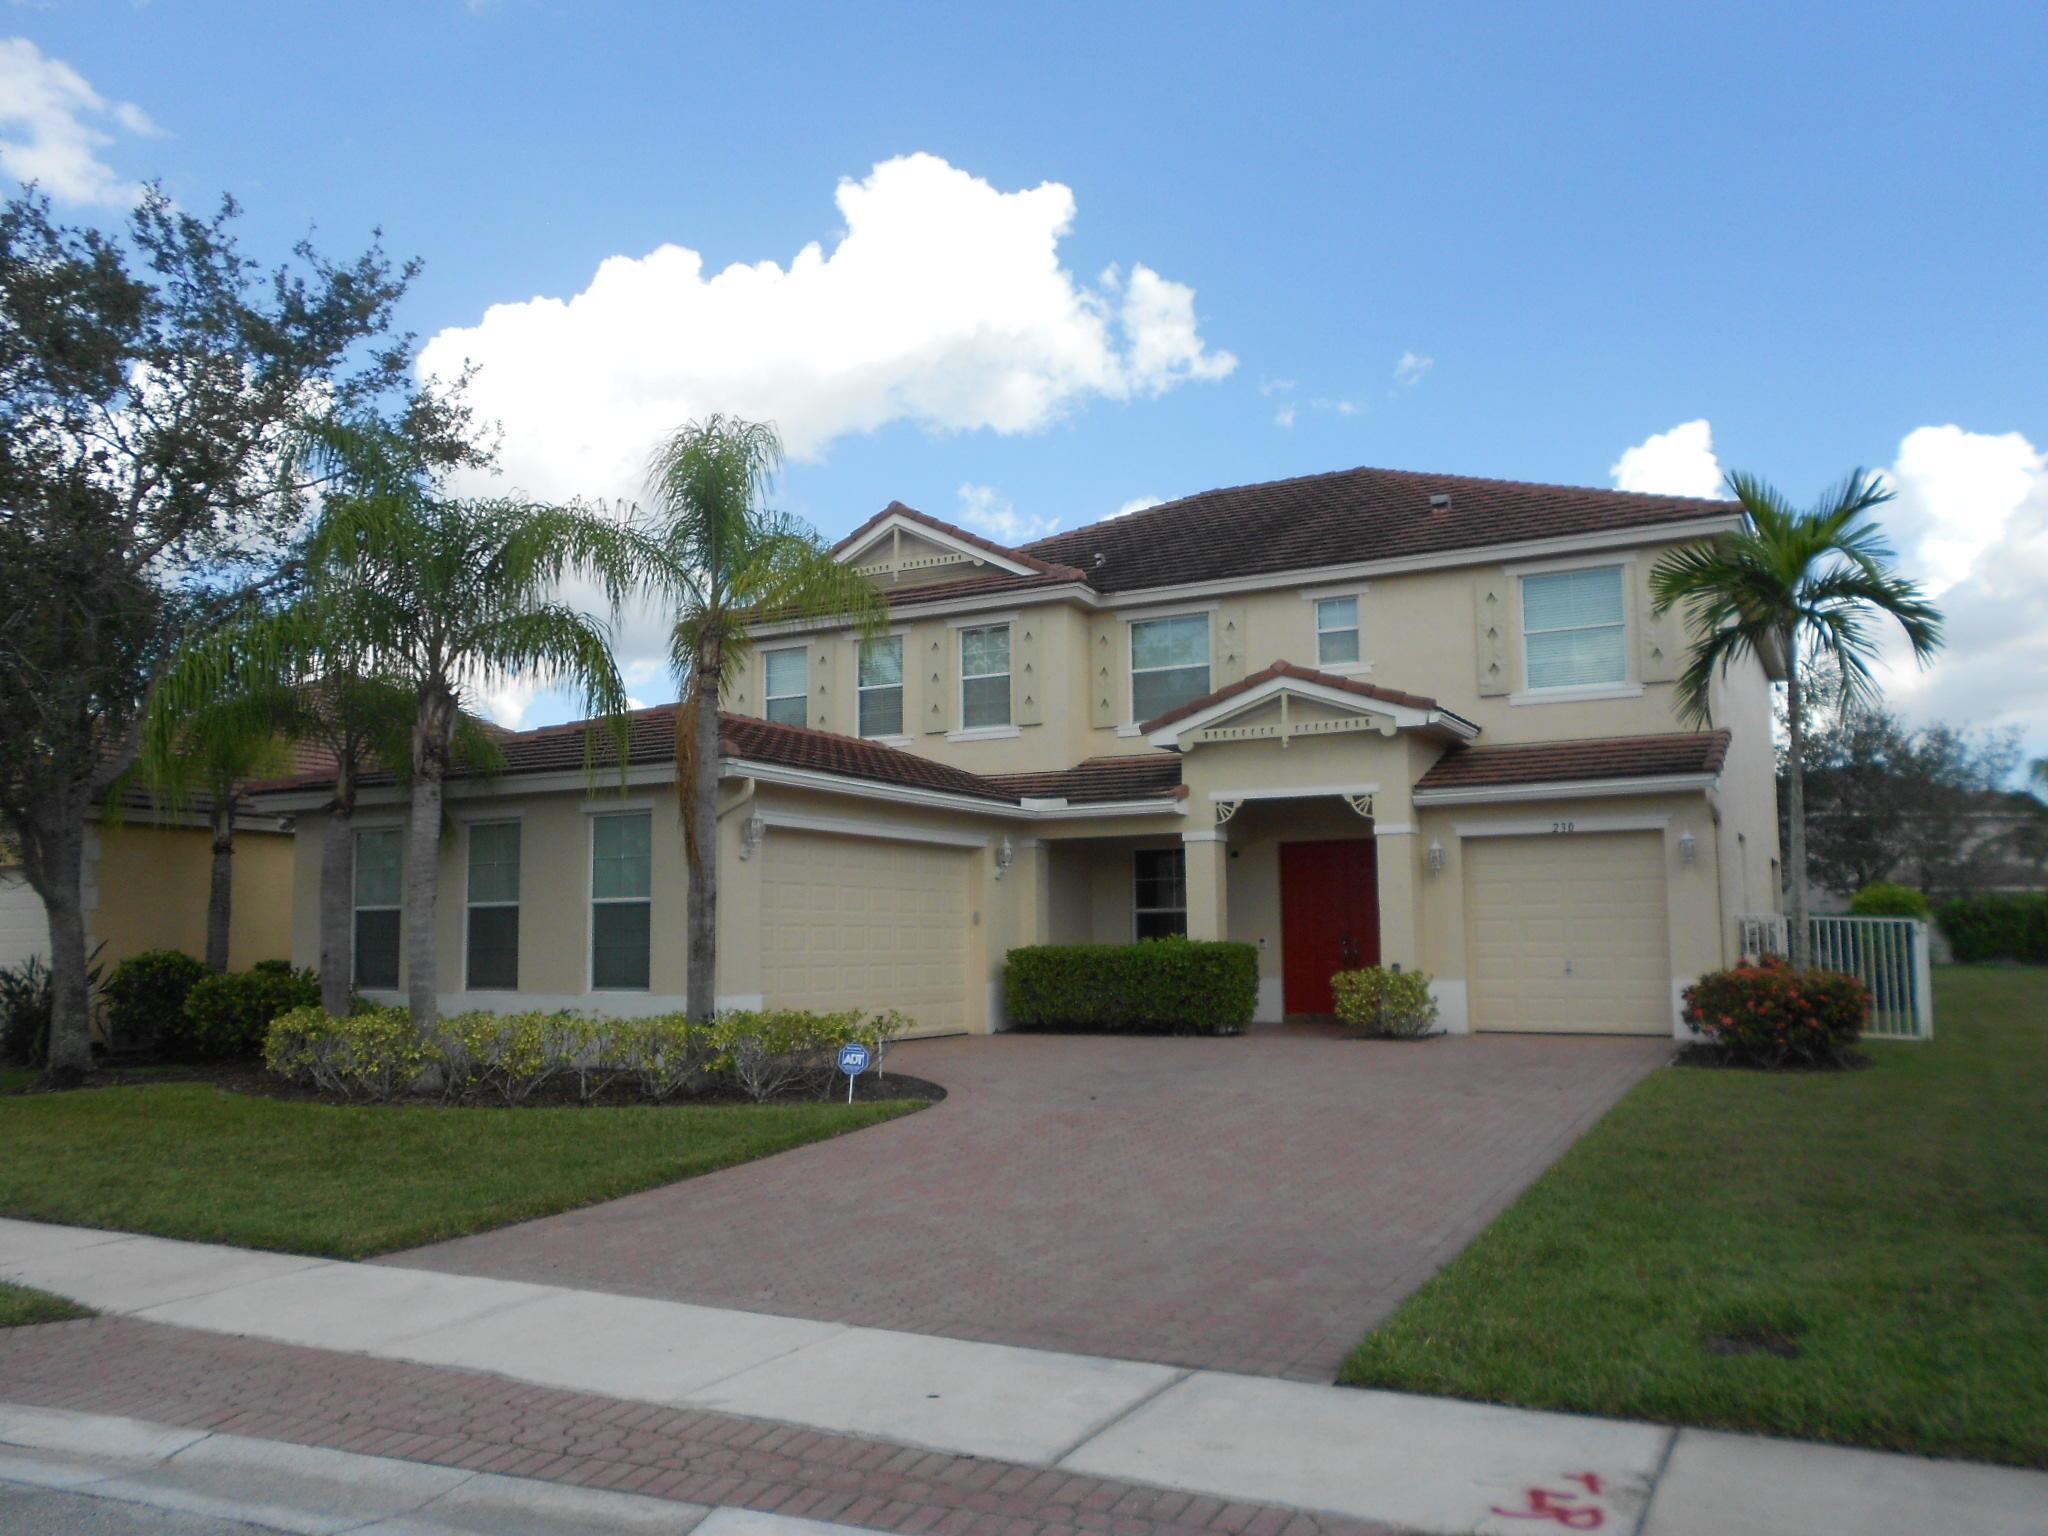 230 Palm Beach Plantation Blvd Royal Palm Beach, FL 33411